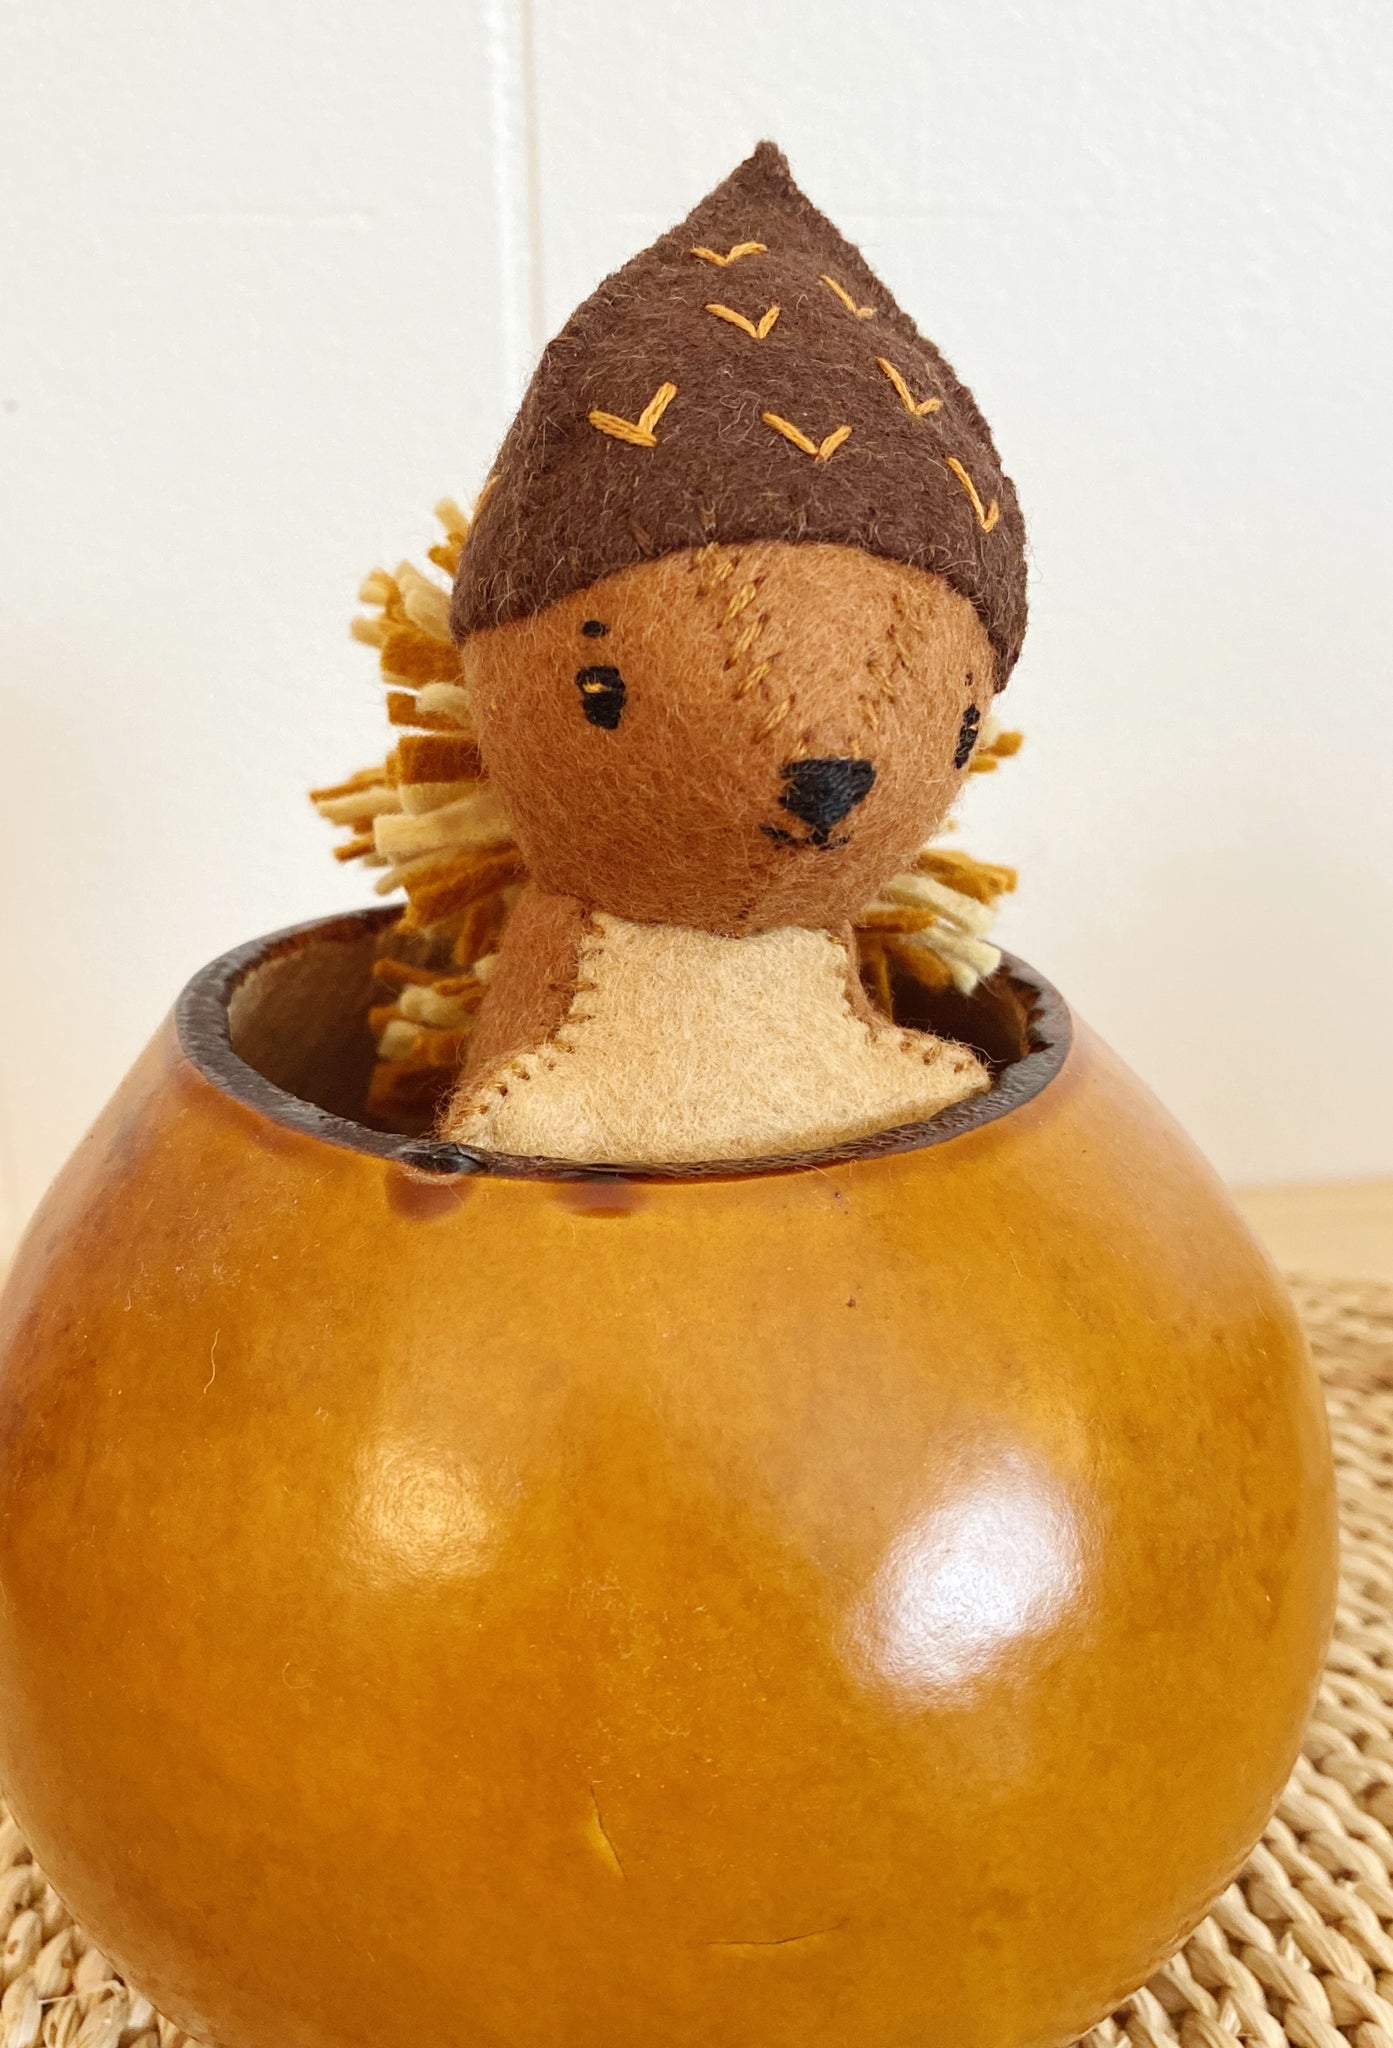 Completed Stuffed Squirrel In an Acorn Hat